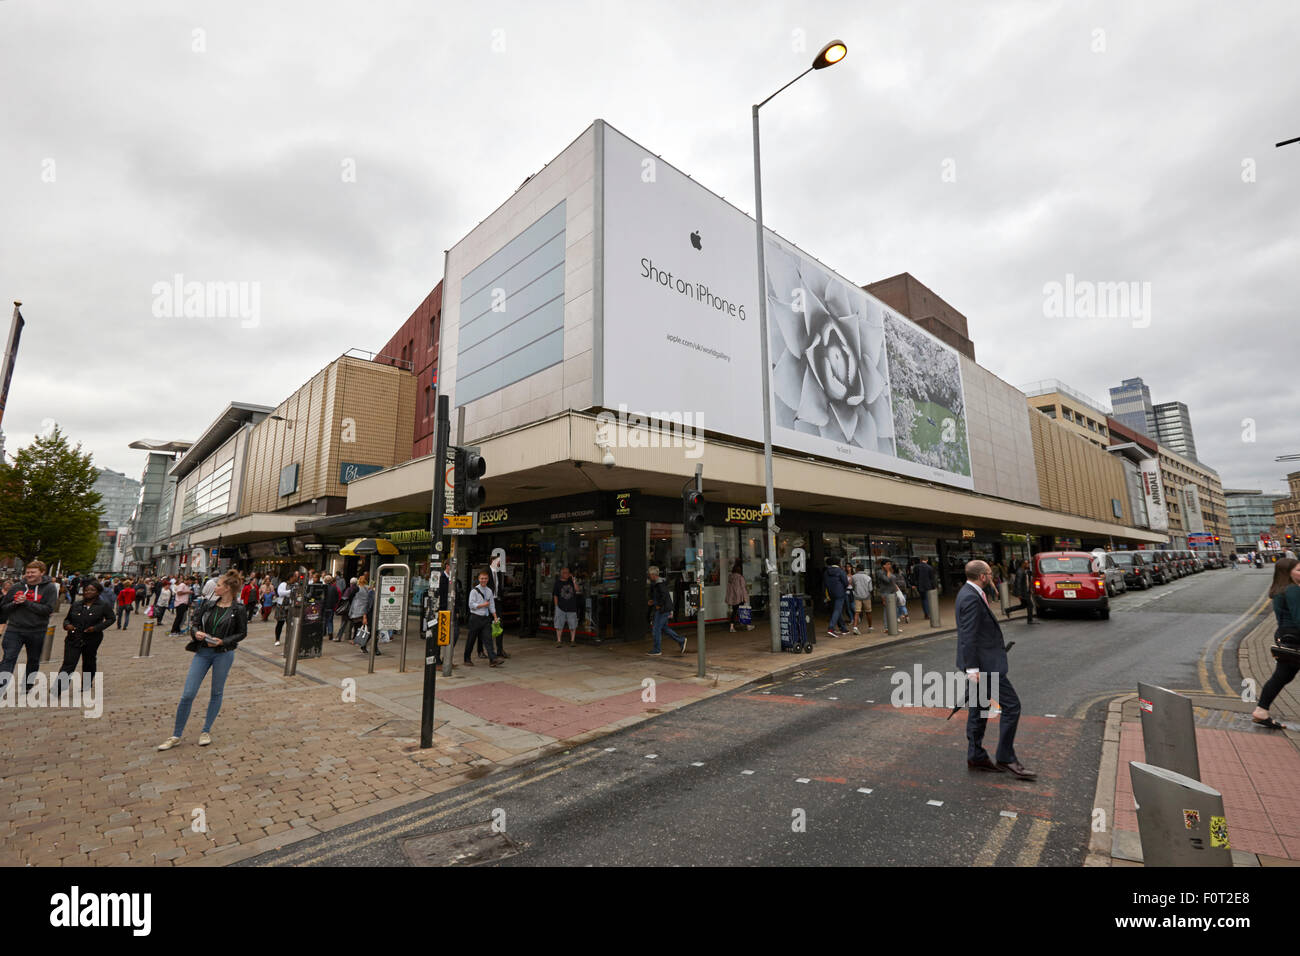 The arndale shopping centre and junction of high street and market streets Manchester England UK - Stock Image